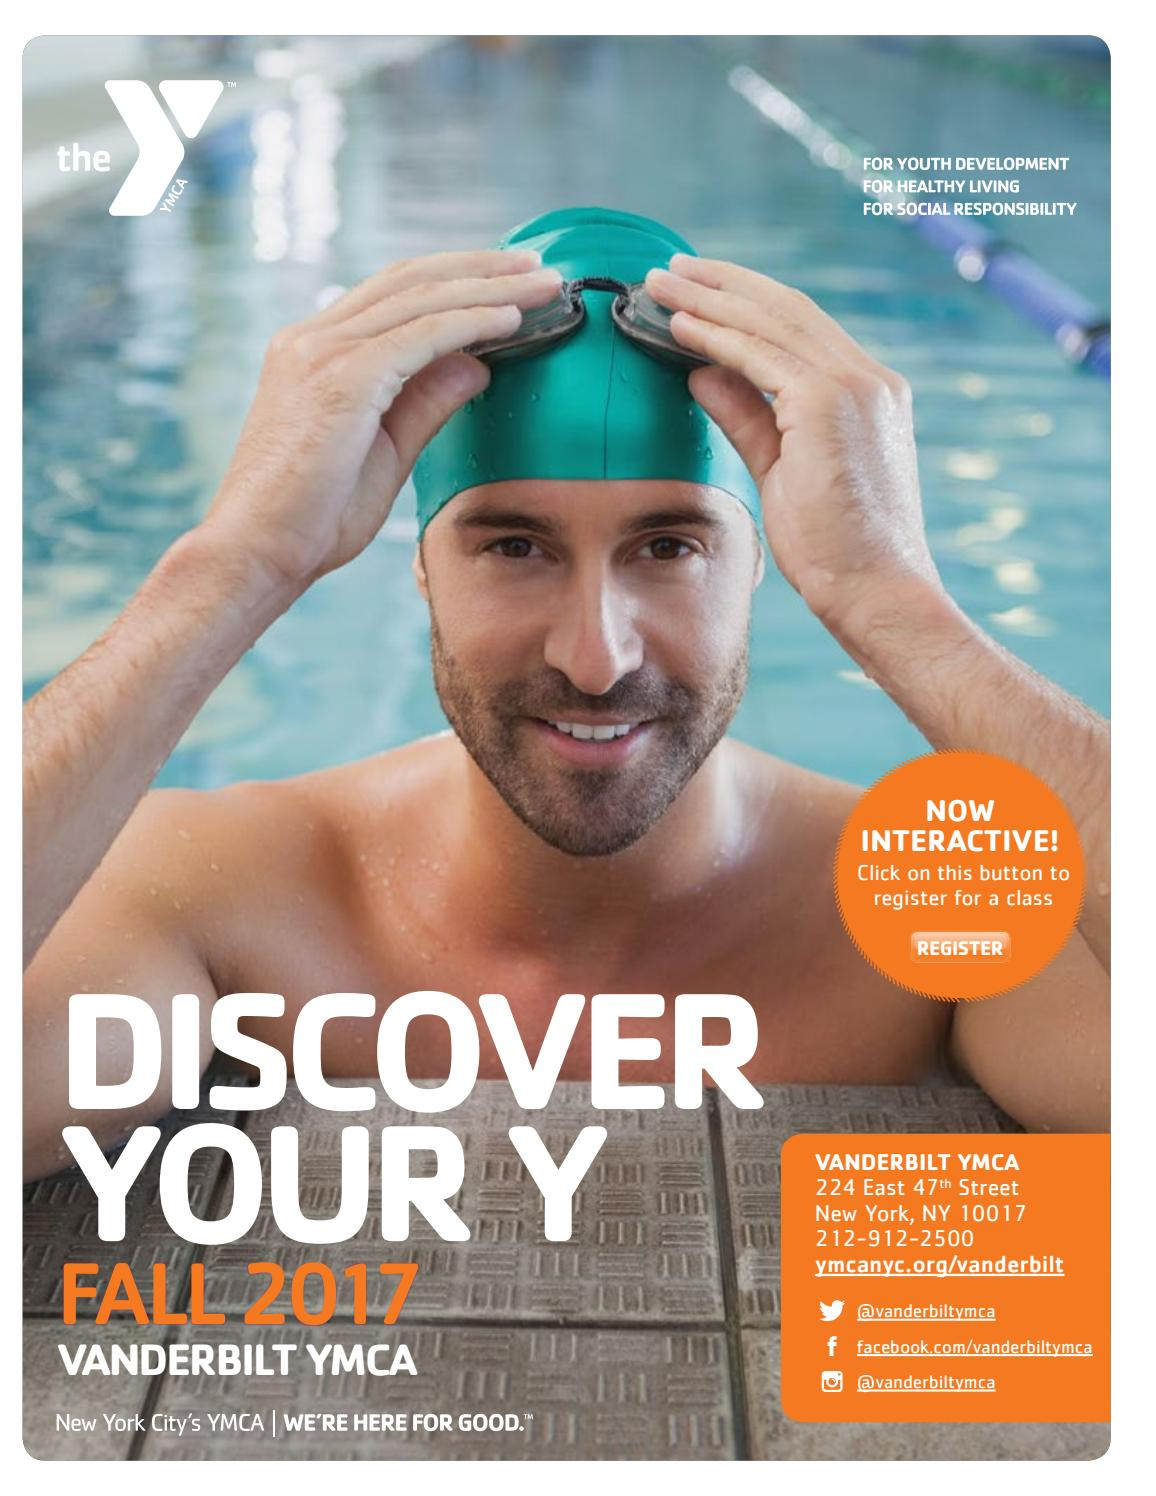 vanderbilt fall 2017 program guides by new york city's ymca - issuu